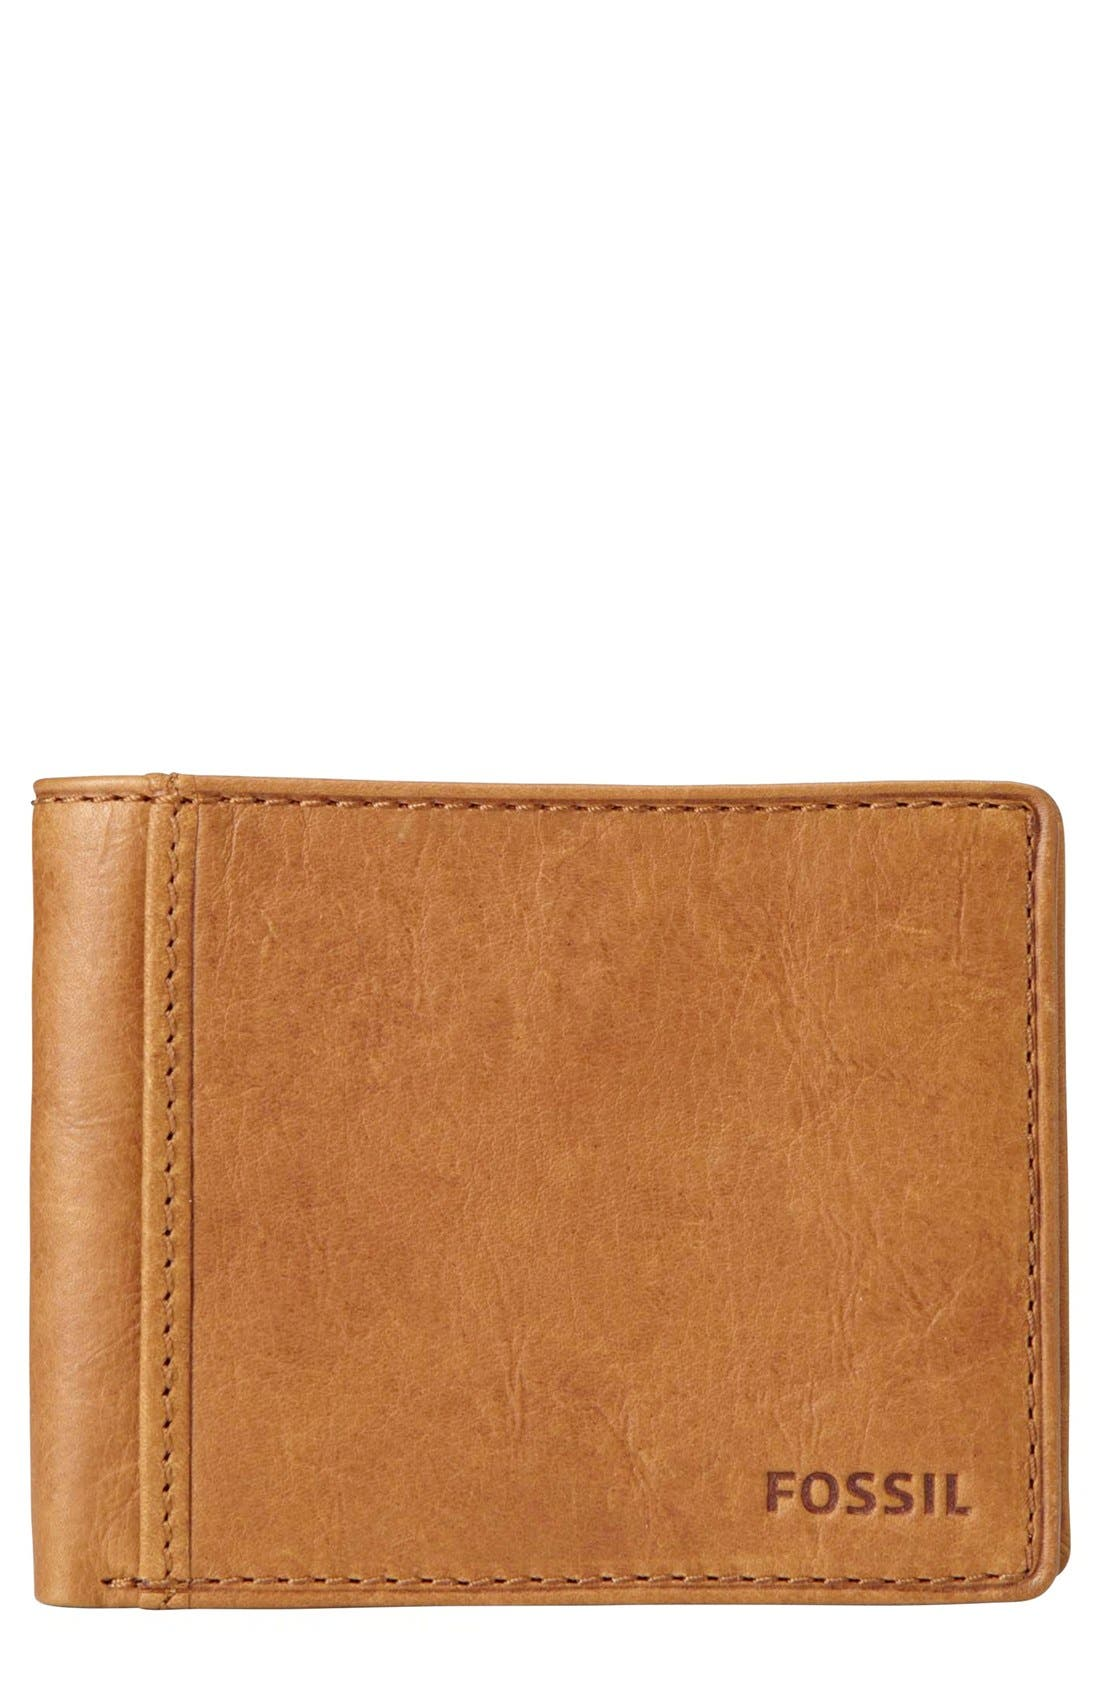 Main Image - Fossil Ingram Traveler Wallet